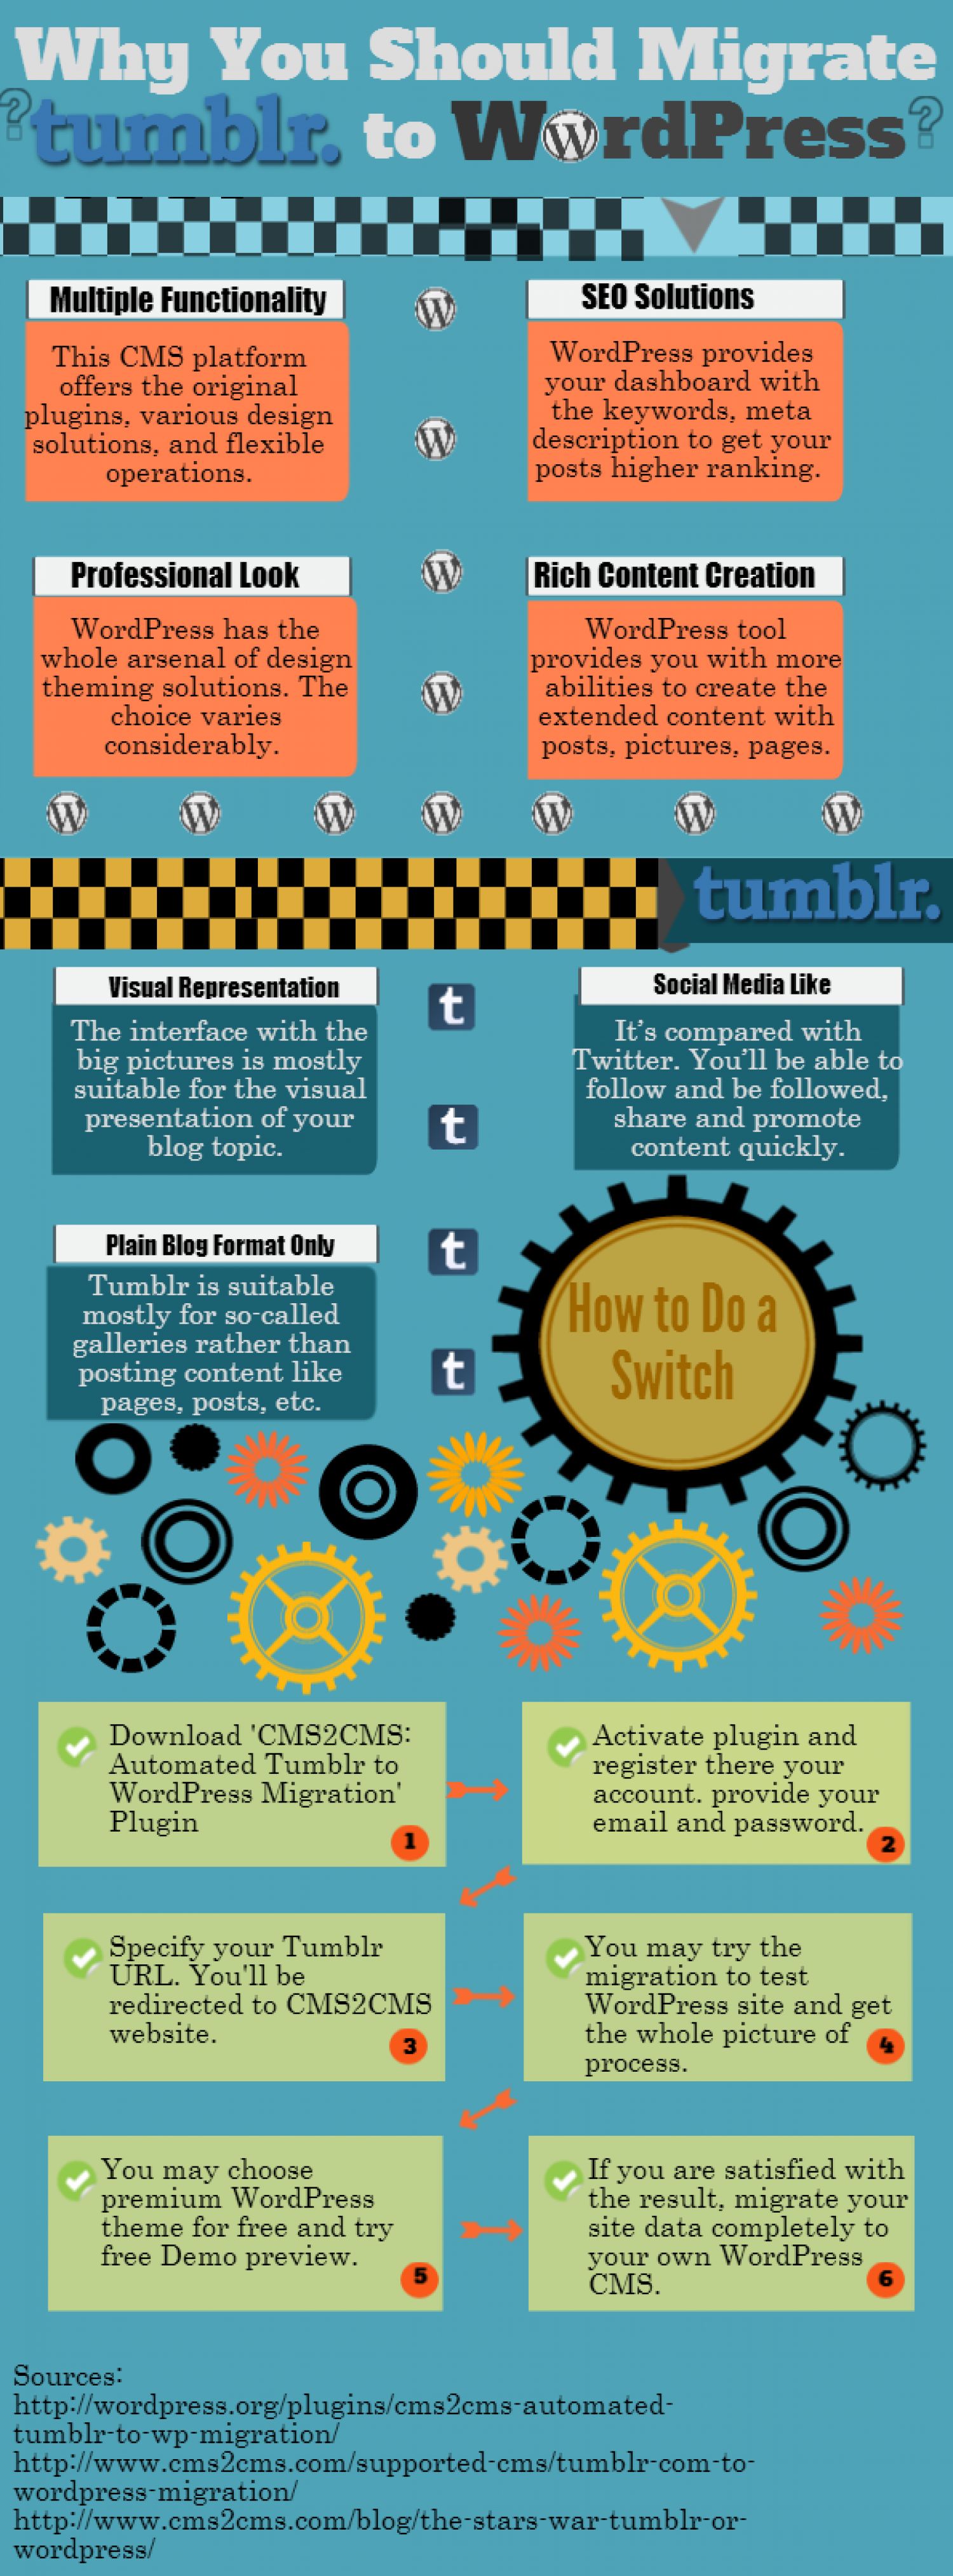 Why You Should Migrate Your Tumblr to WordPress Infographic